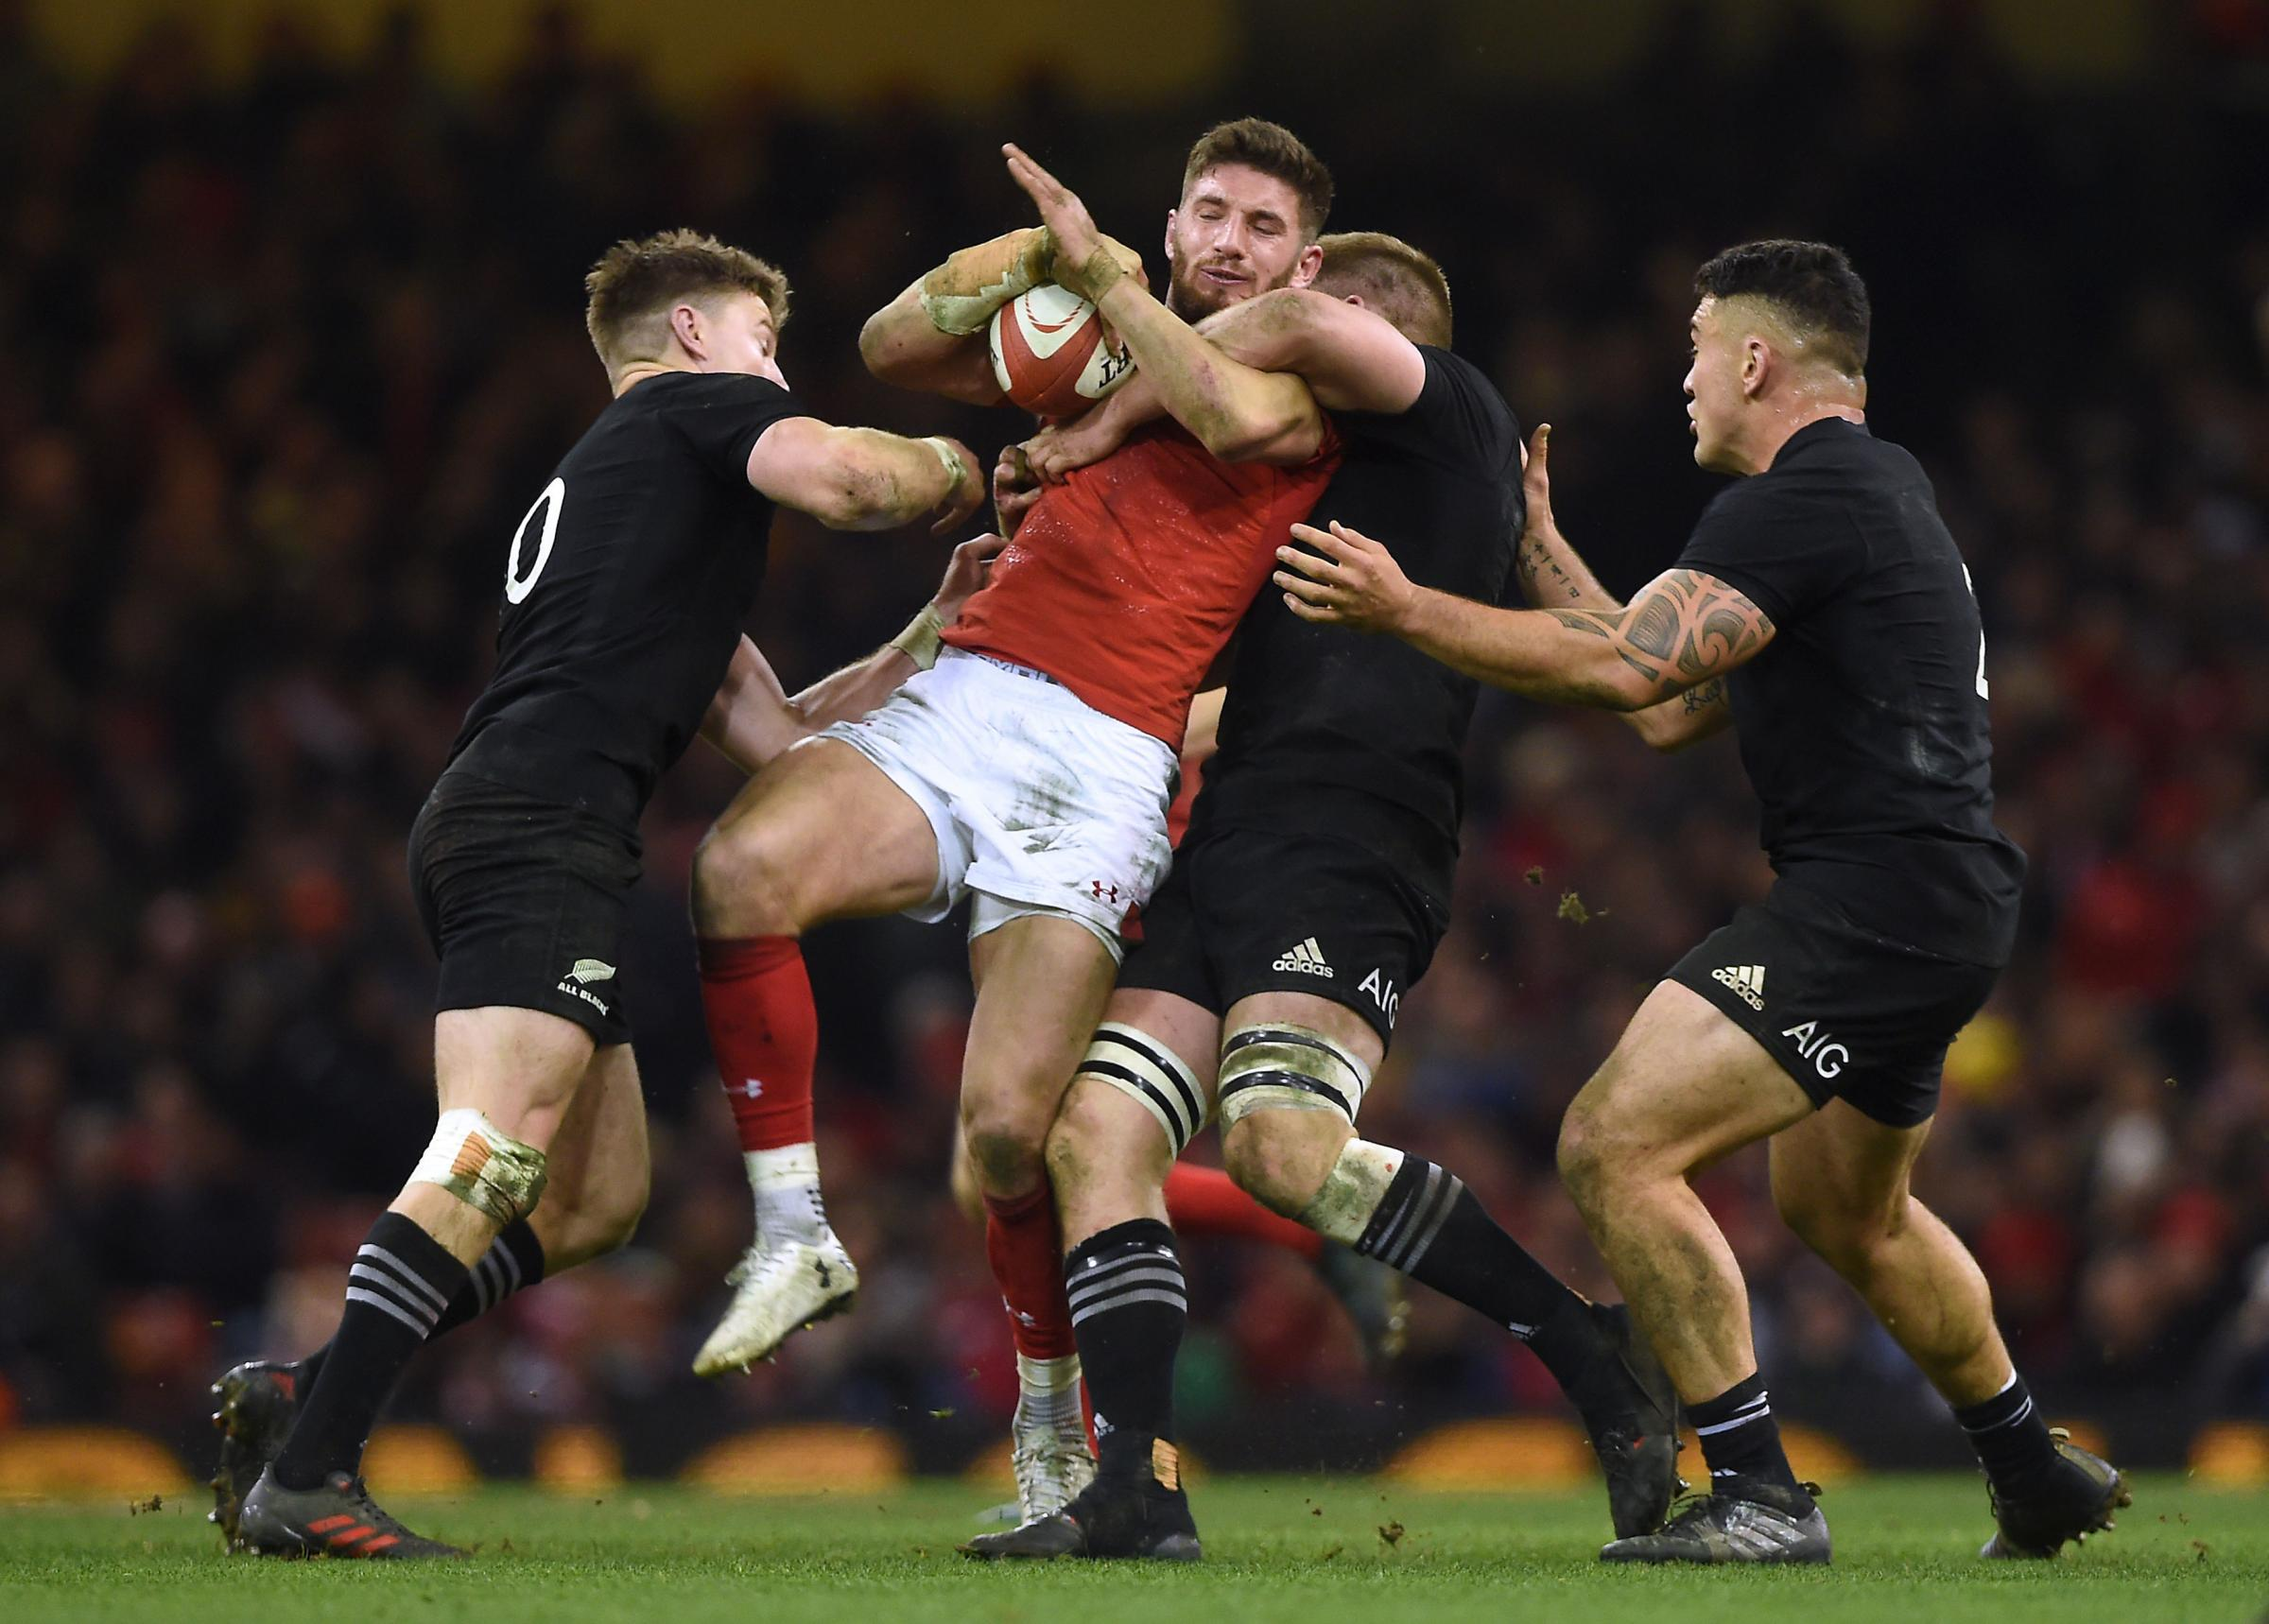 Wales Owen Williams is tackled by New Zealands Beauden Barrett, Sam Cane and Codie Taylor during the Autumn International at the Principality Stadium, Cardiff. PRESS ASSOCIATION Photo. Picture date: Saturday November 25, 2017. See PA story RUGBYU